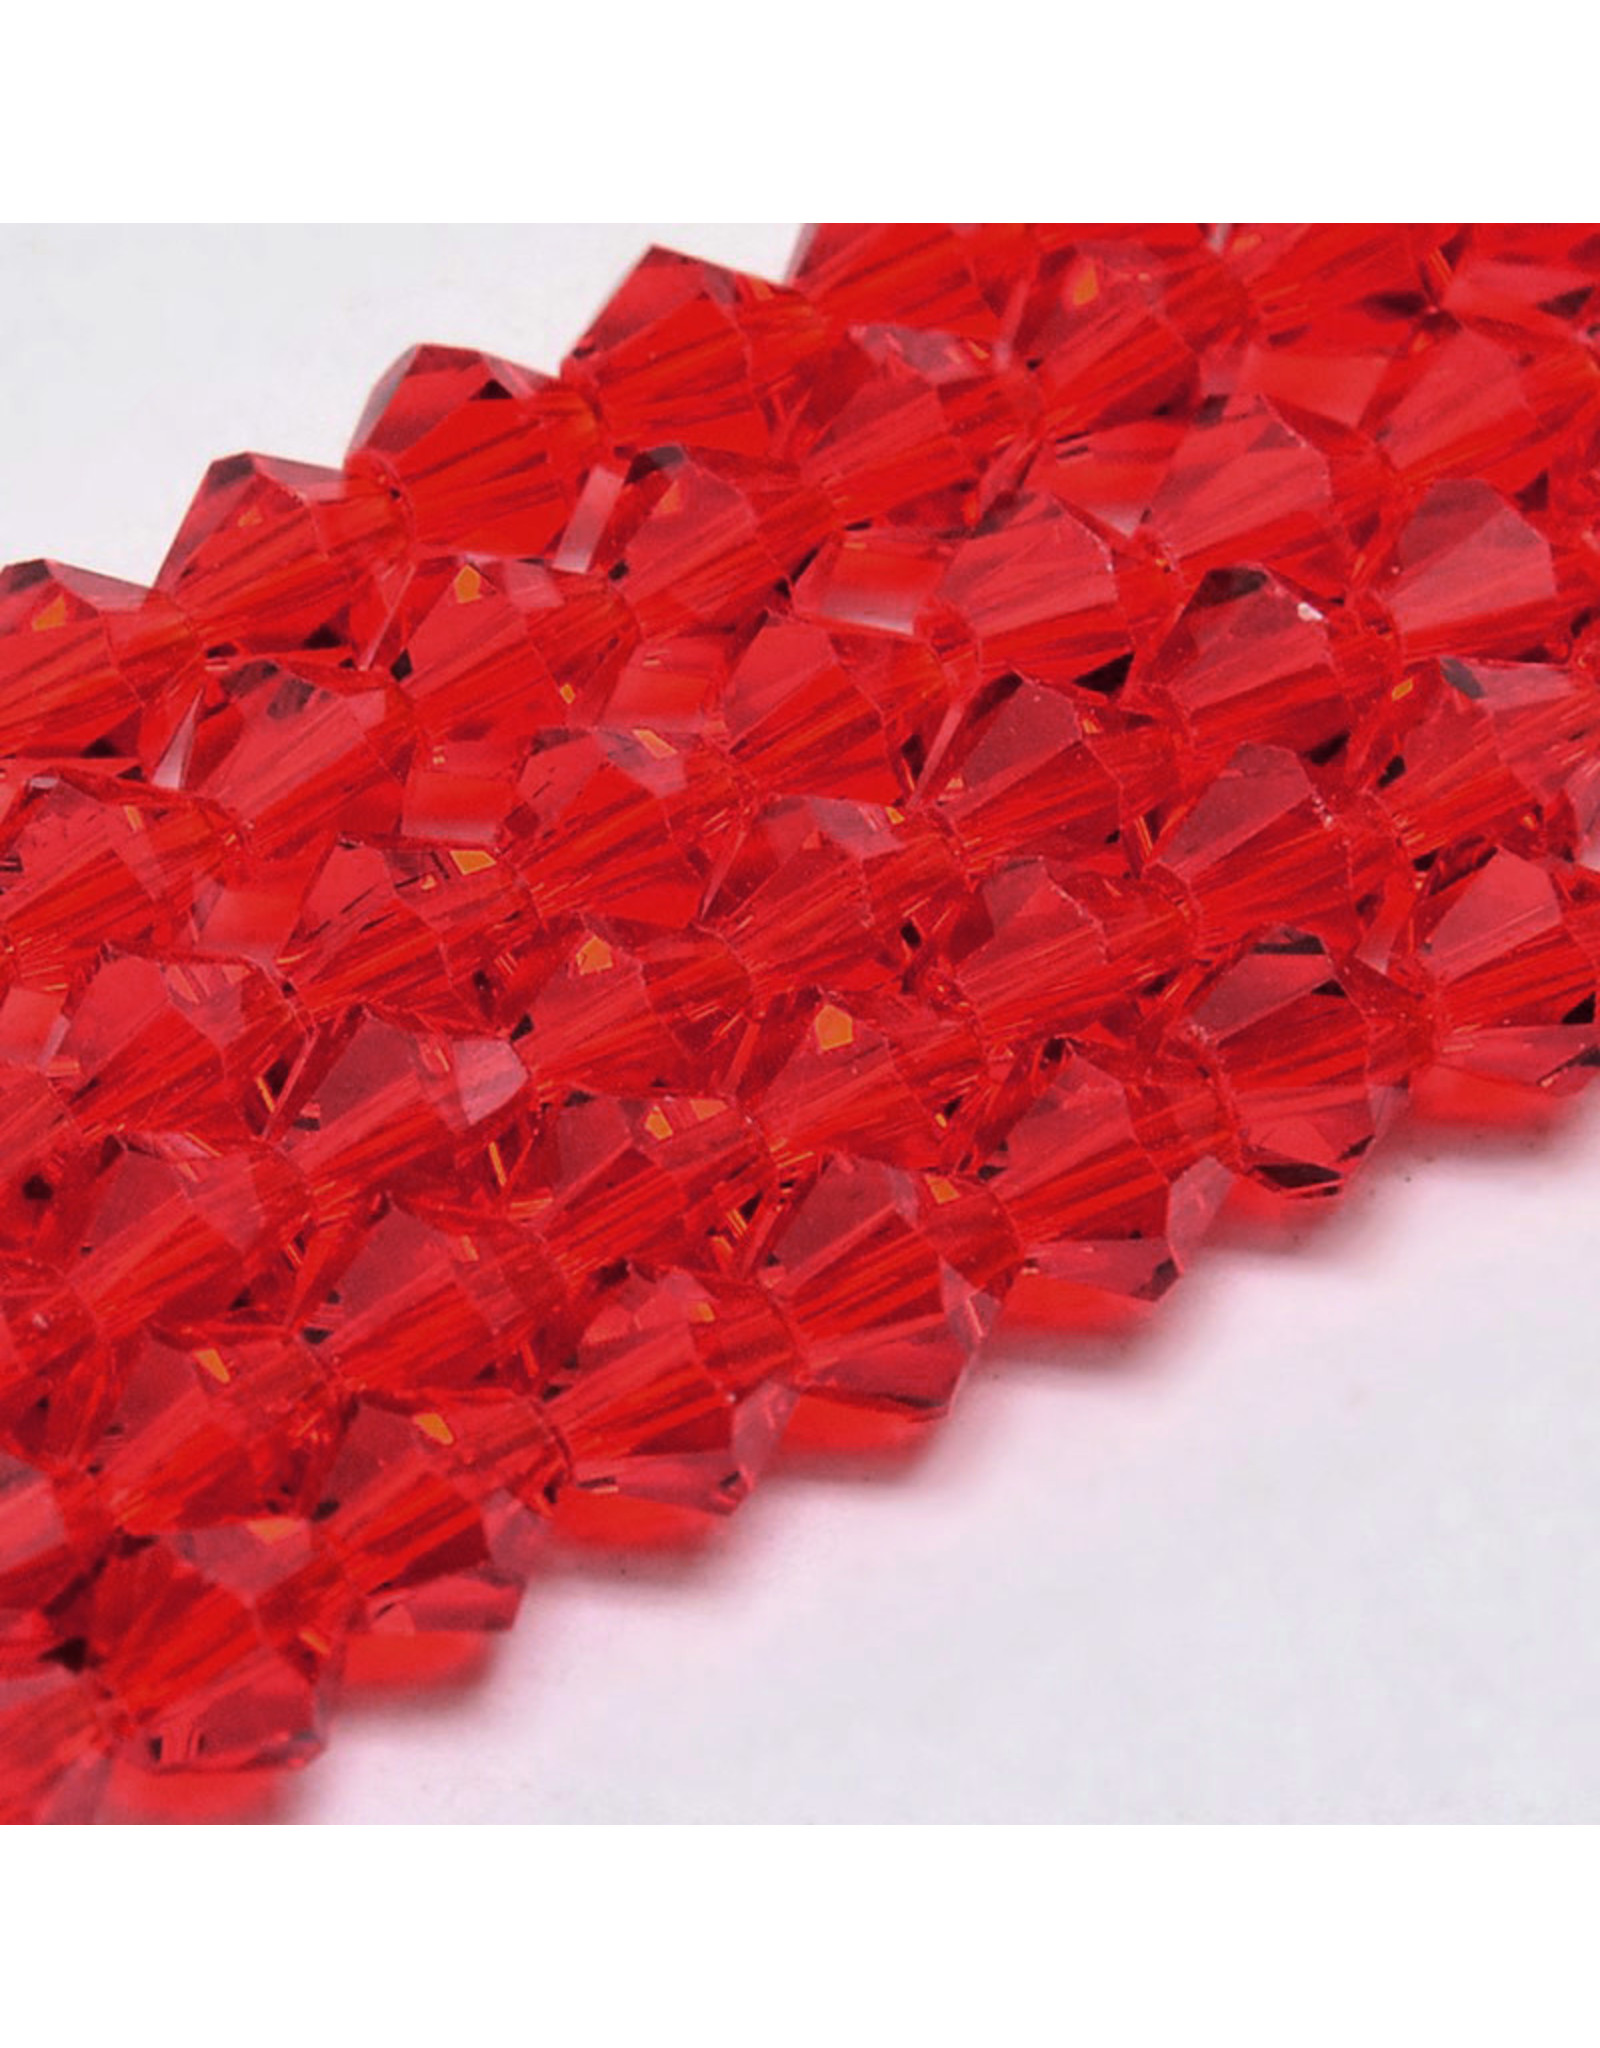 4mm Bicone  Red   'AA'  Grade  x95